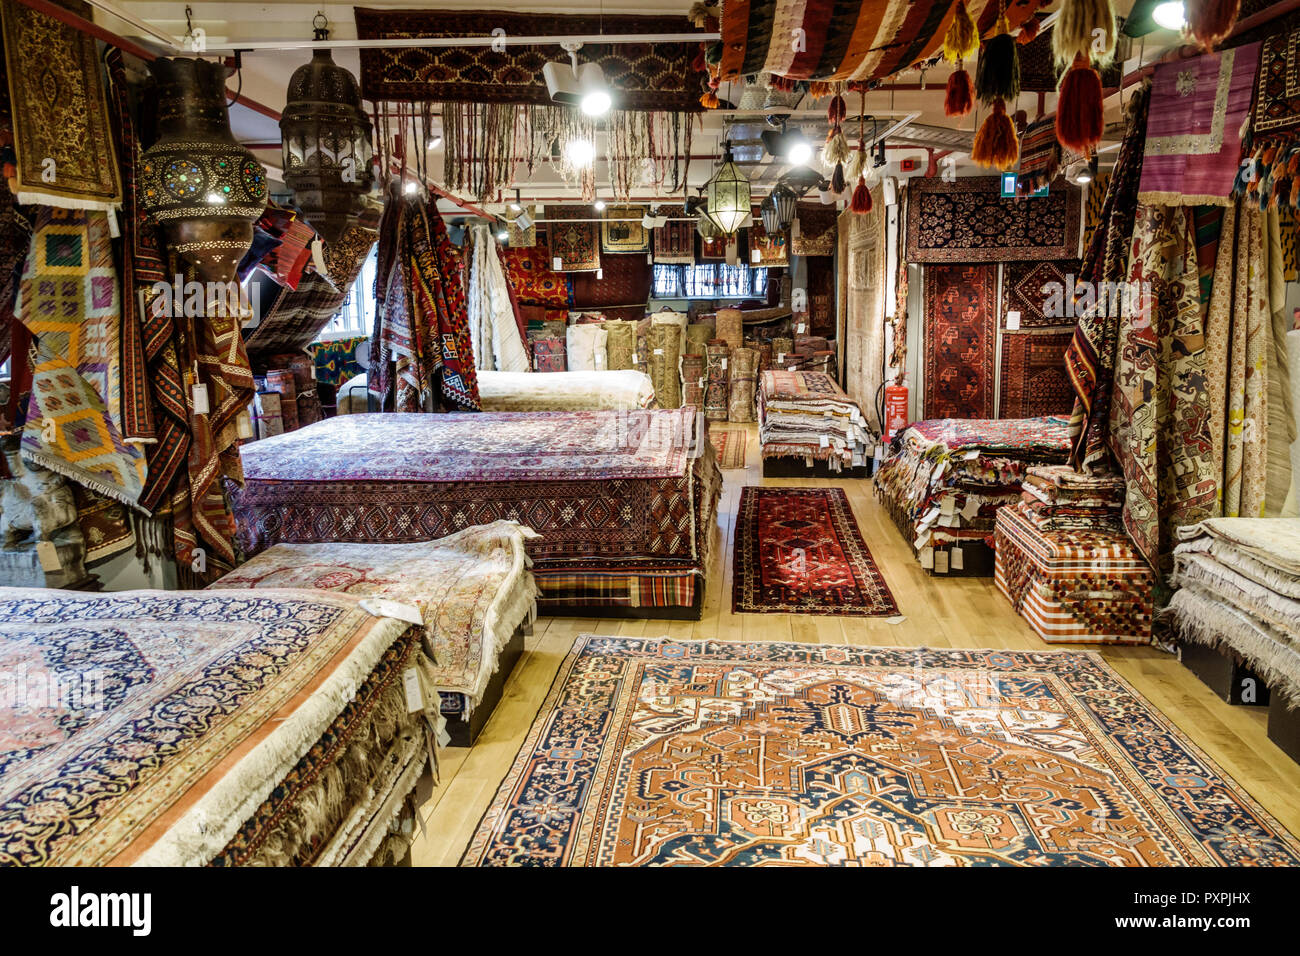 London England United Kingdom Great Britain Soho Liberty Department Store shopping luxury brands upmarket home decor oriental rugs display sale - Stock Image